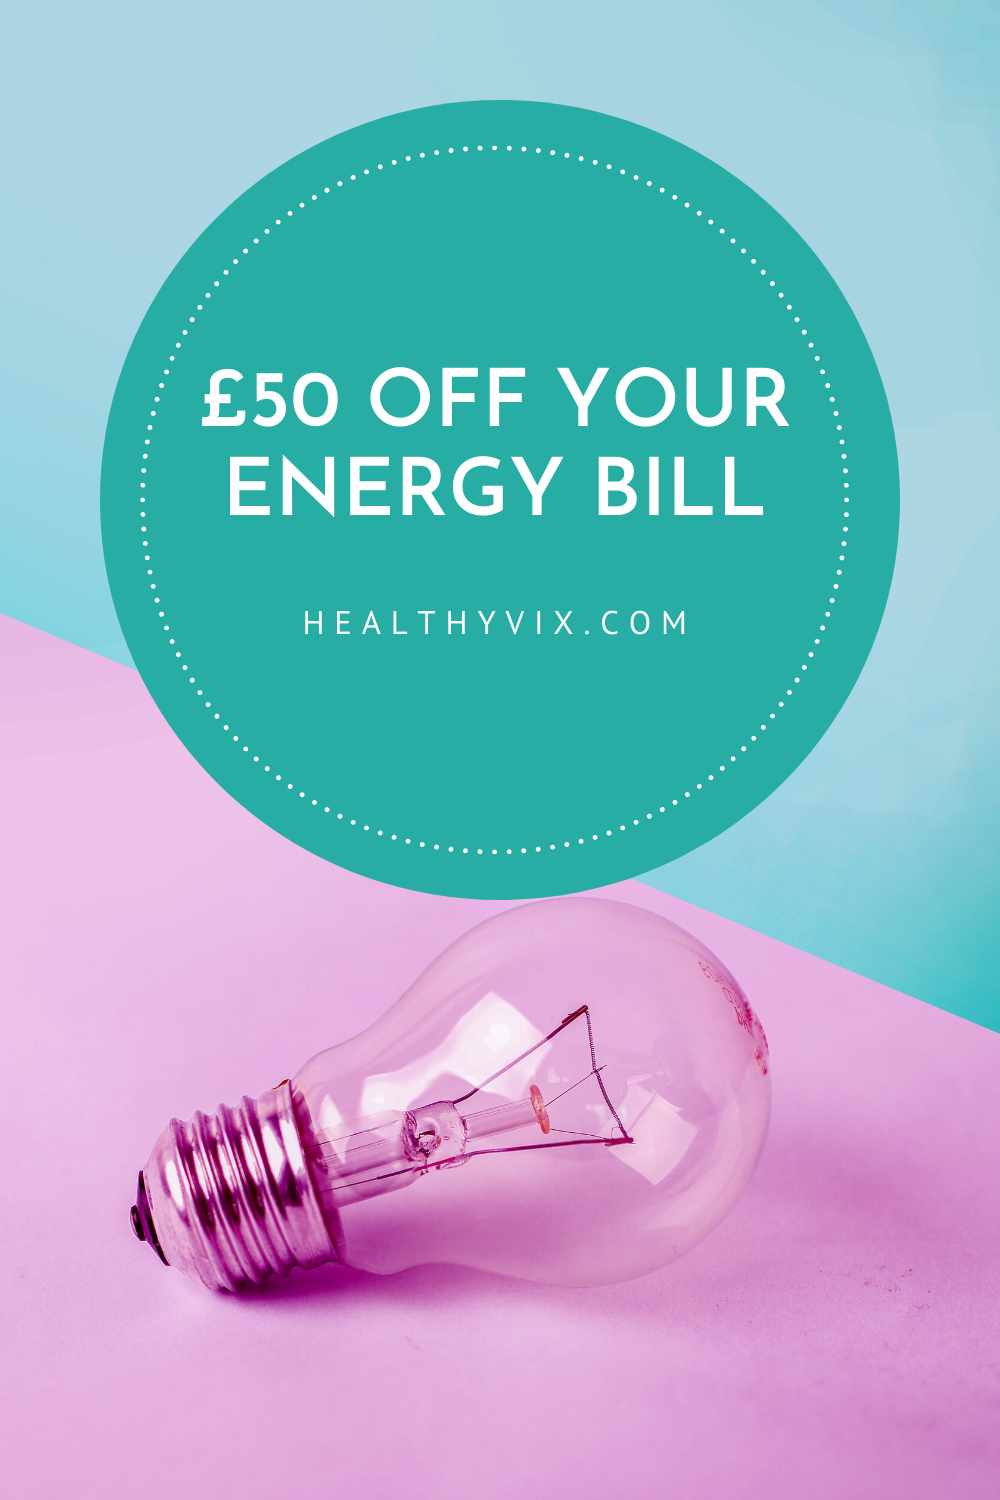 Save money and the environment. Get £50 discount by